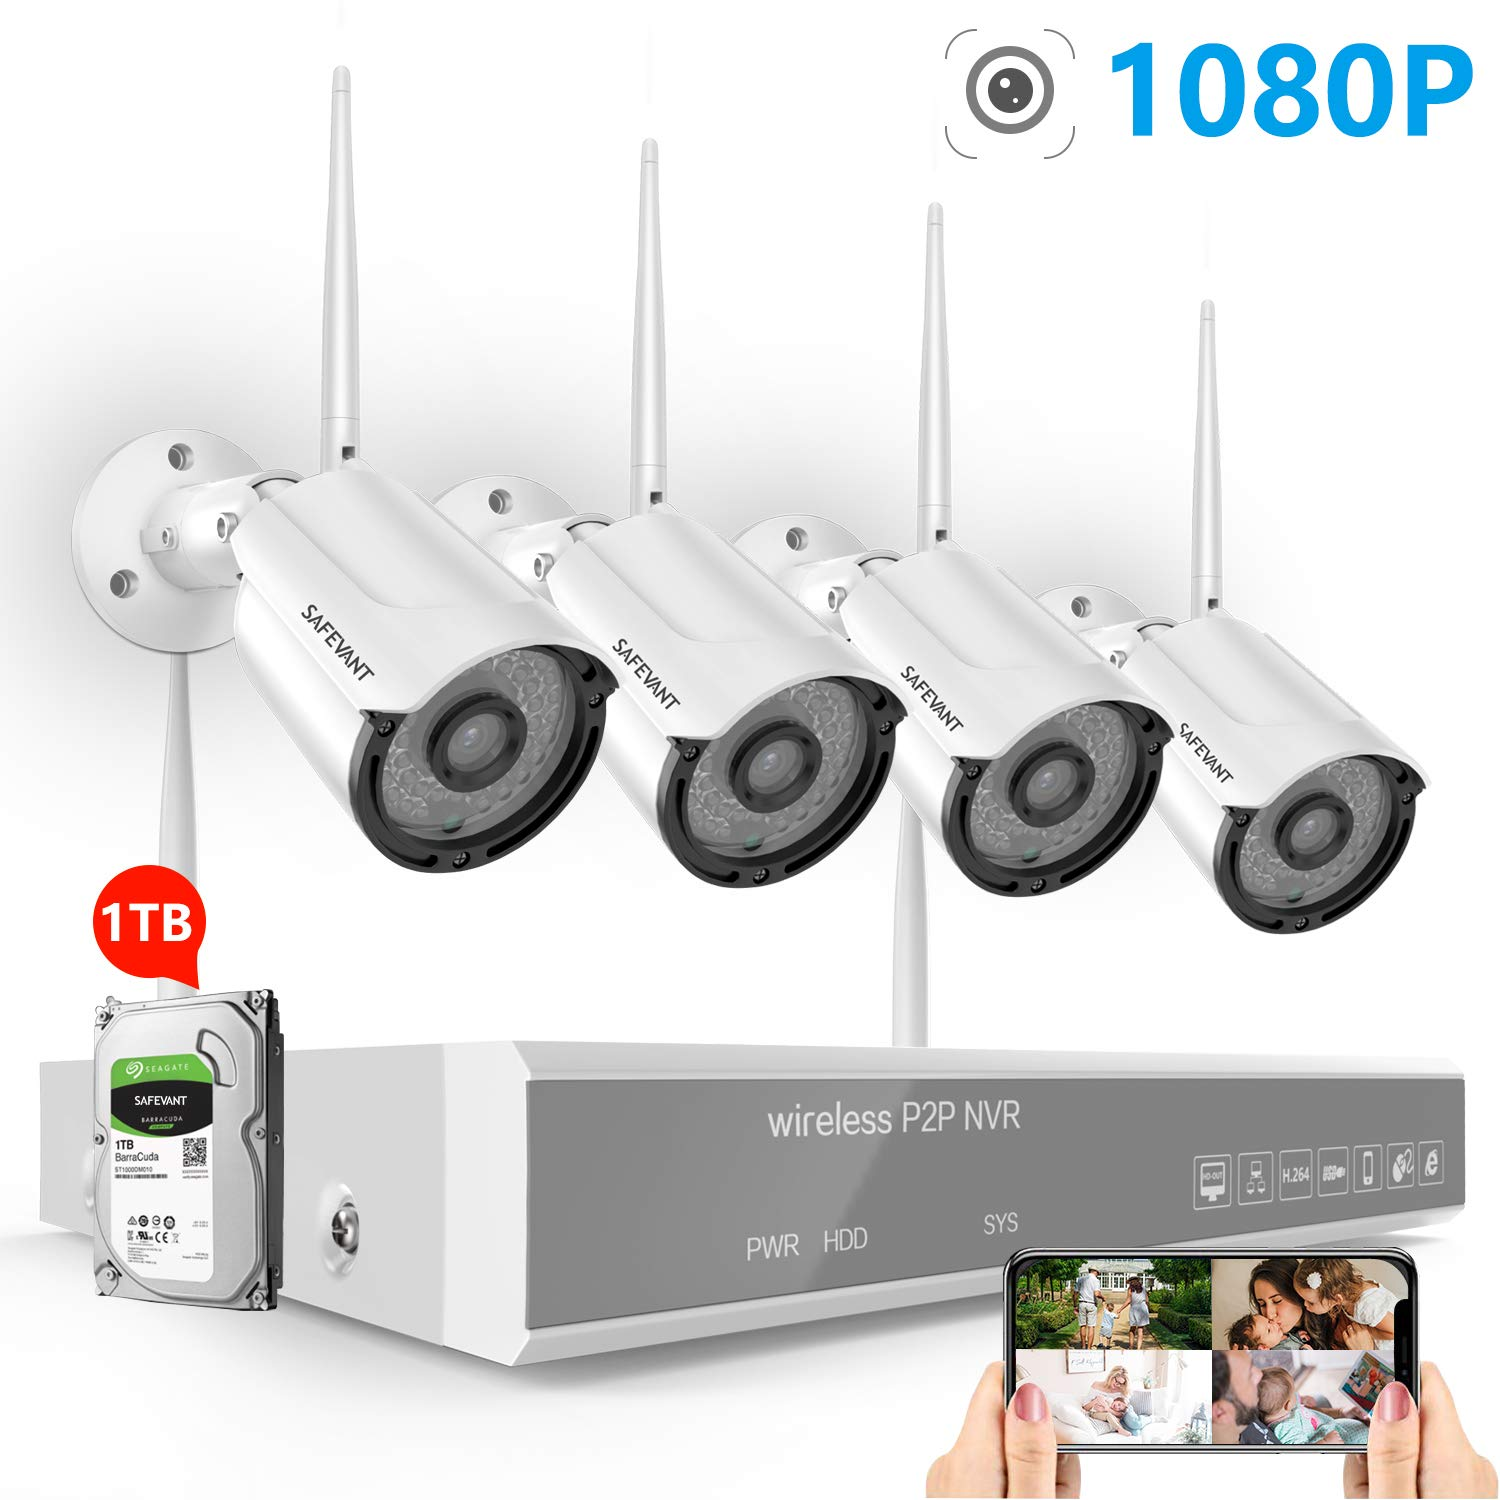 Full HD 1080P Security Camera System Wireless with 1TB Hard Drive,SAFEVANT 8CH NVR Kits with 4PCS 2.0 MP Indoor Outdoor IP Cameras with Night Vision by SAFEVANT